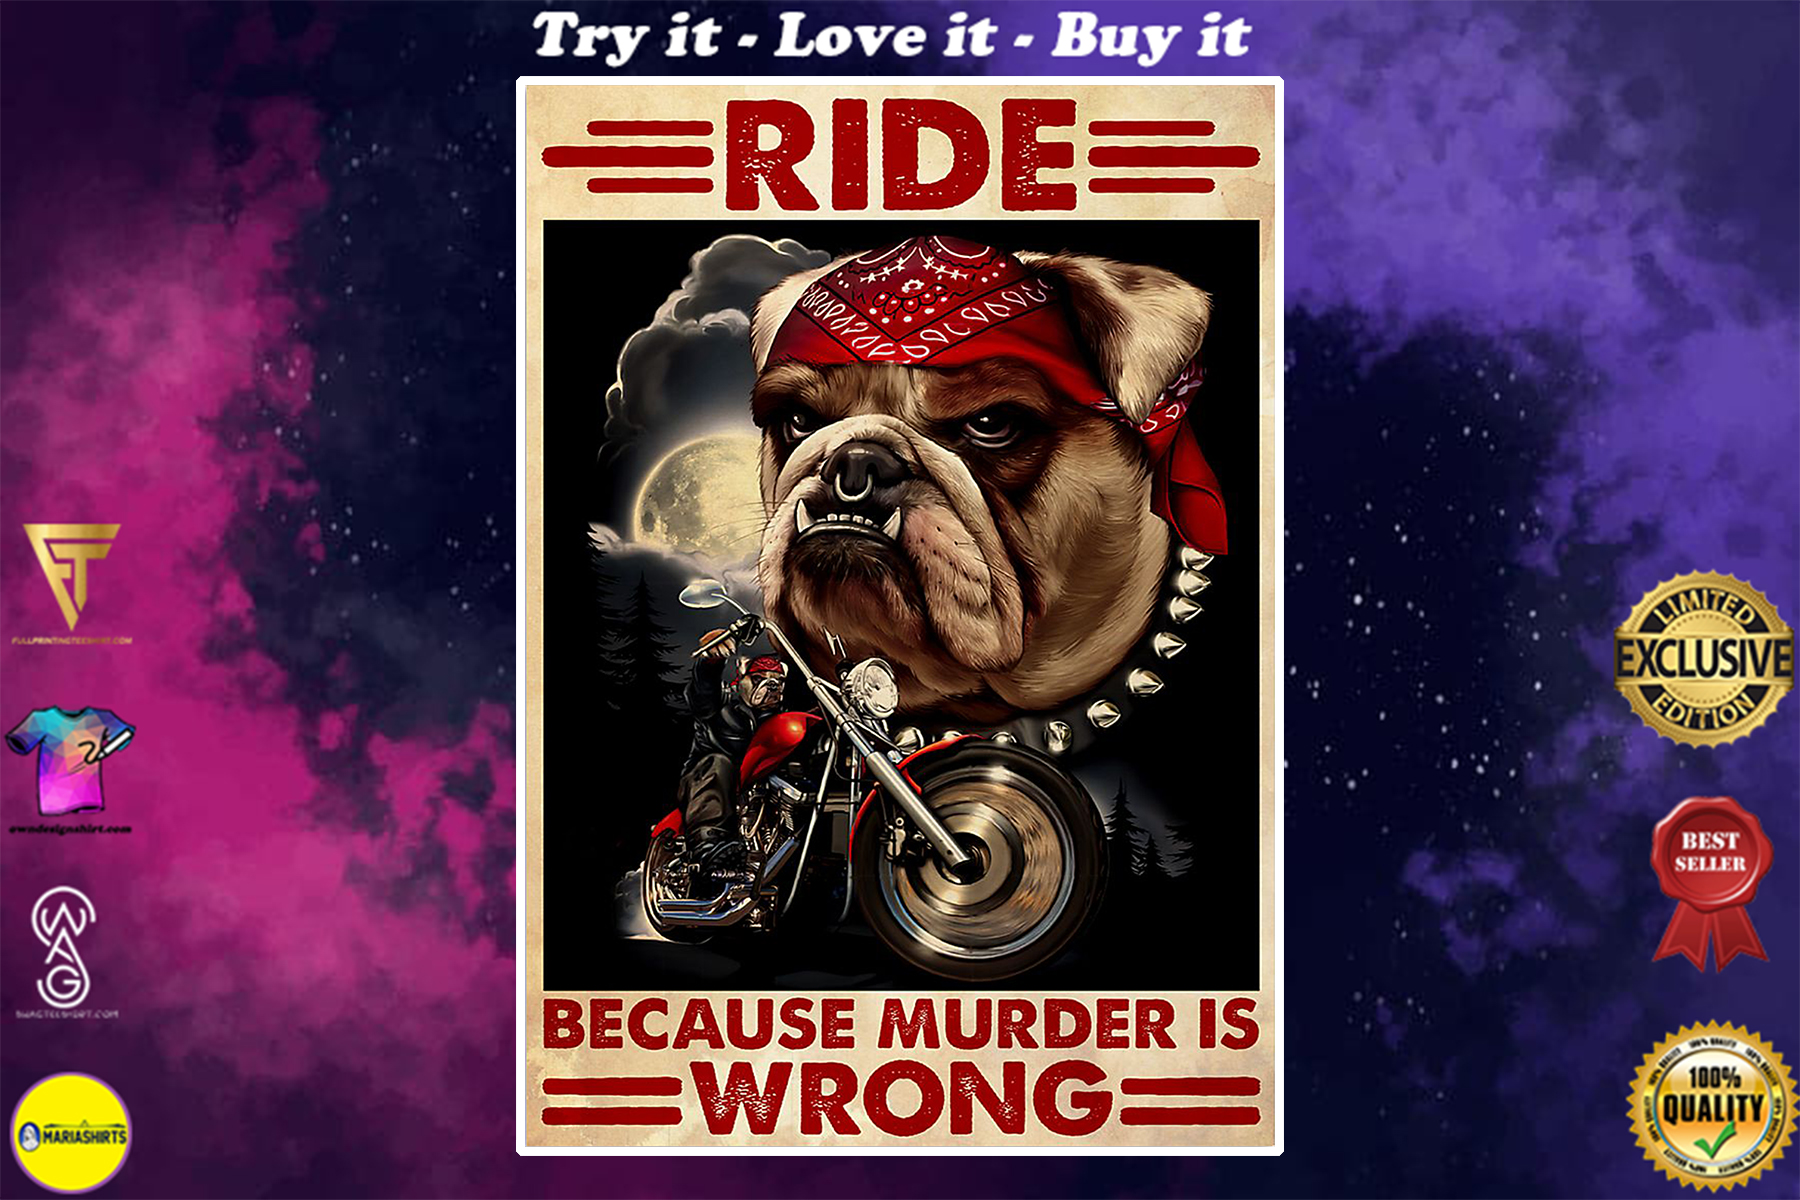 vintage bull dog motorcycles ride because murder is wrong poster